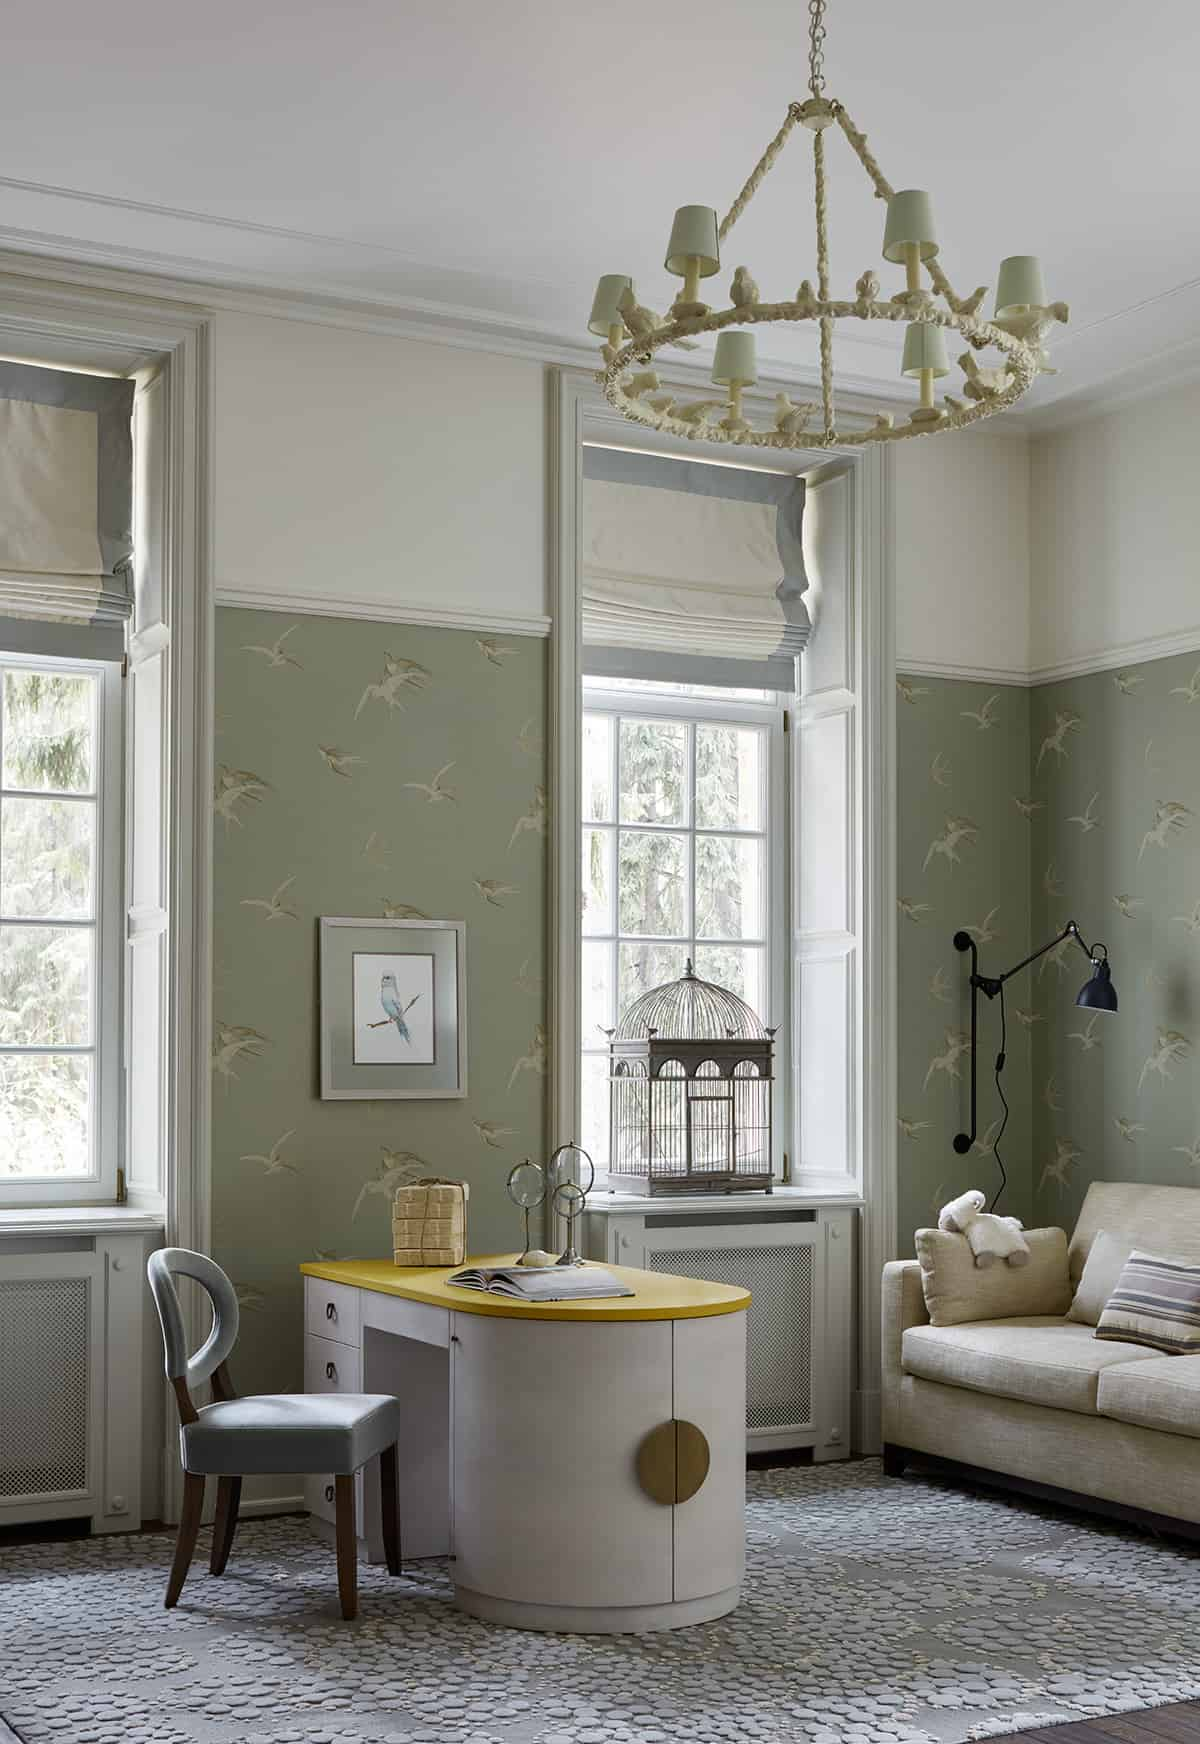 This home office features elegant walls and a luxurious chandelier. The room also features its own sitting area.